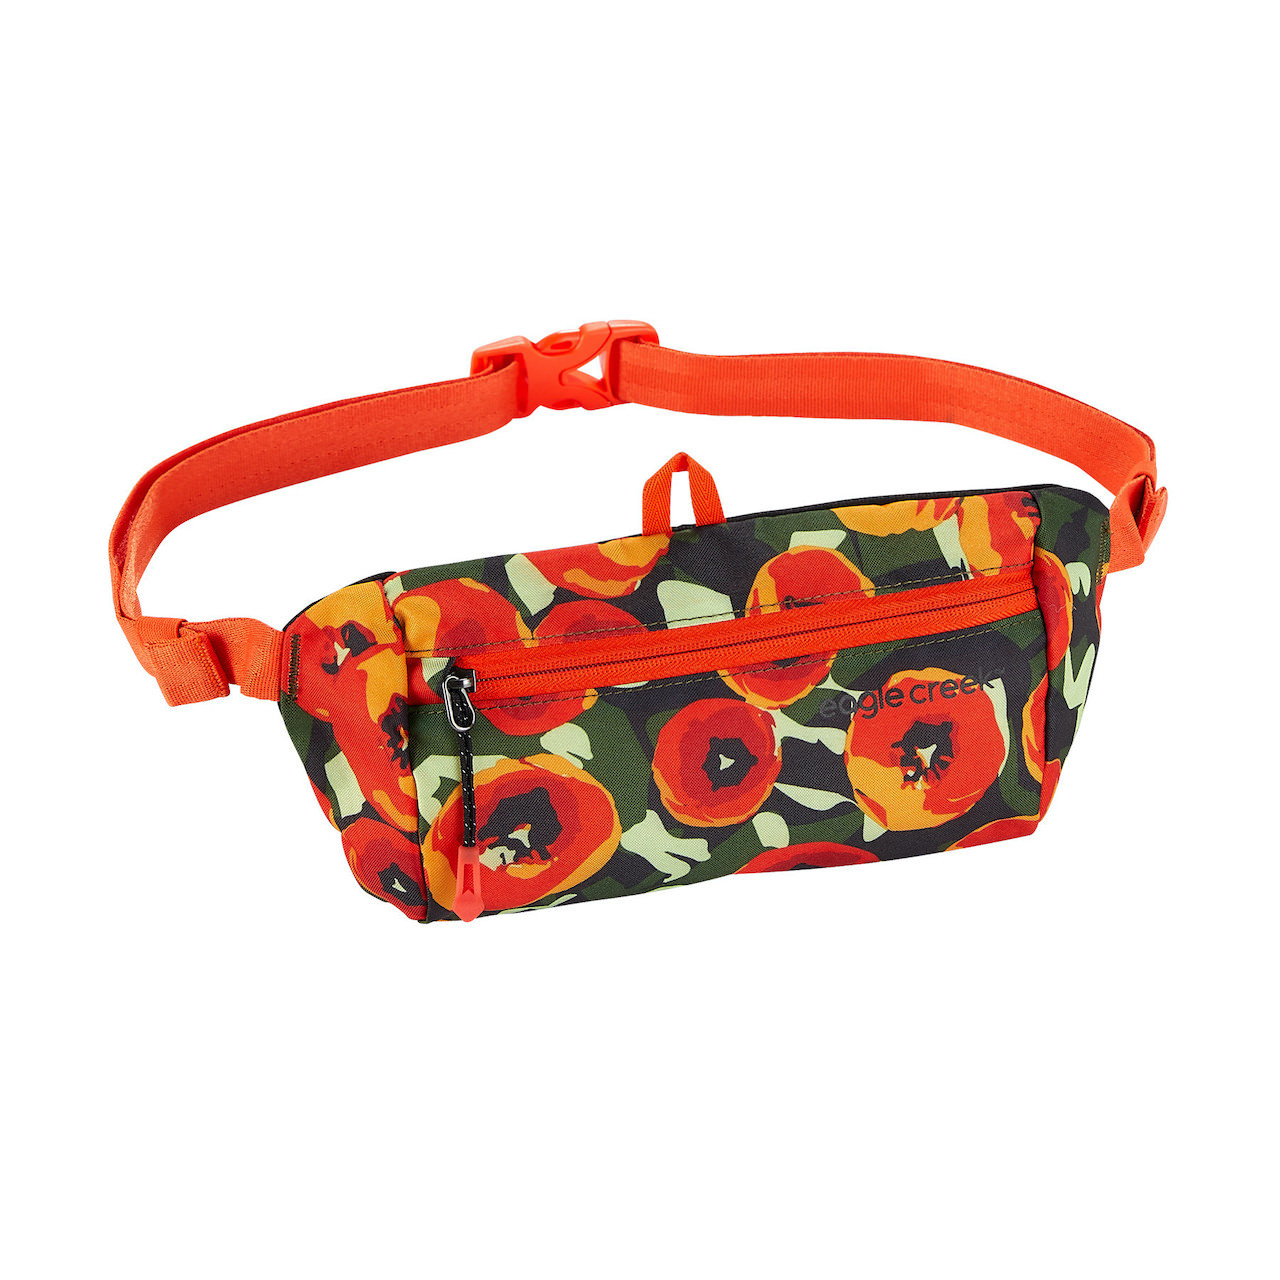 EAGLECREEK_StashWaistBag_S20_Tulip_01-1